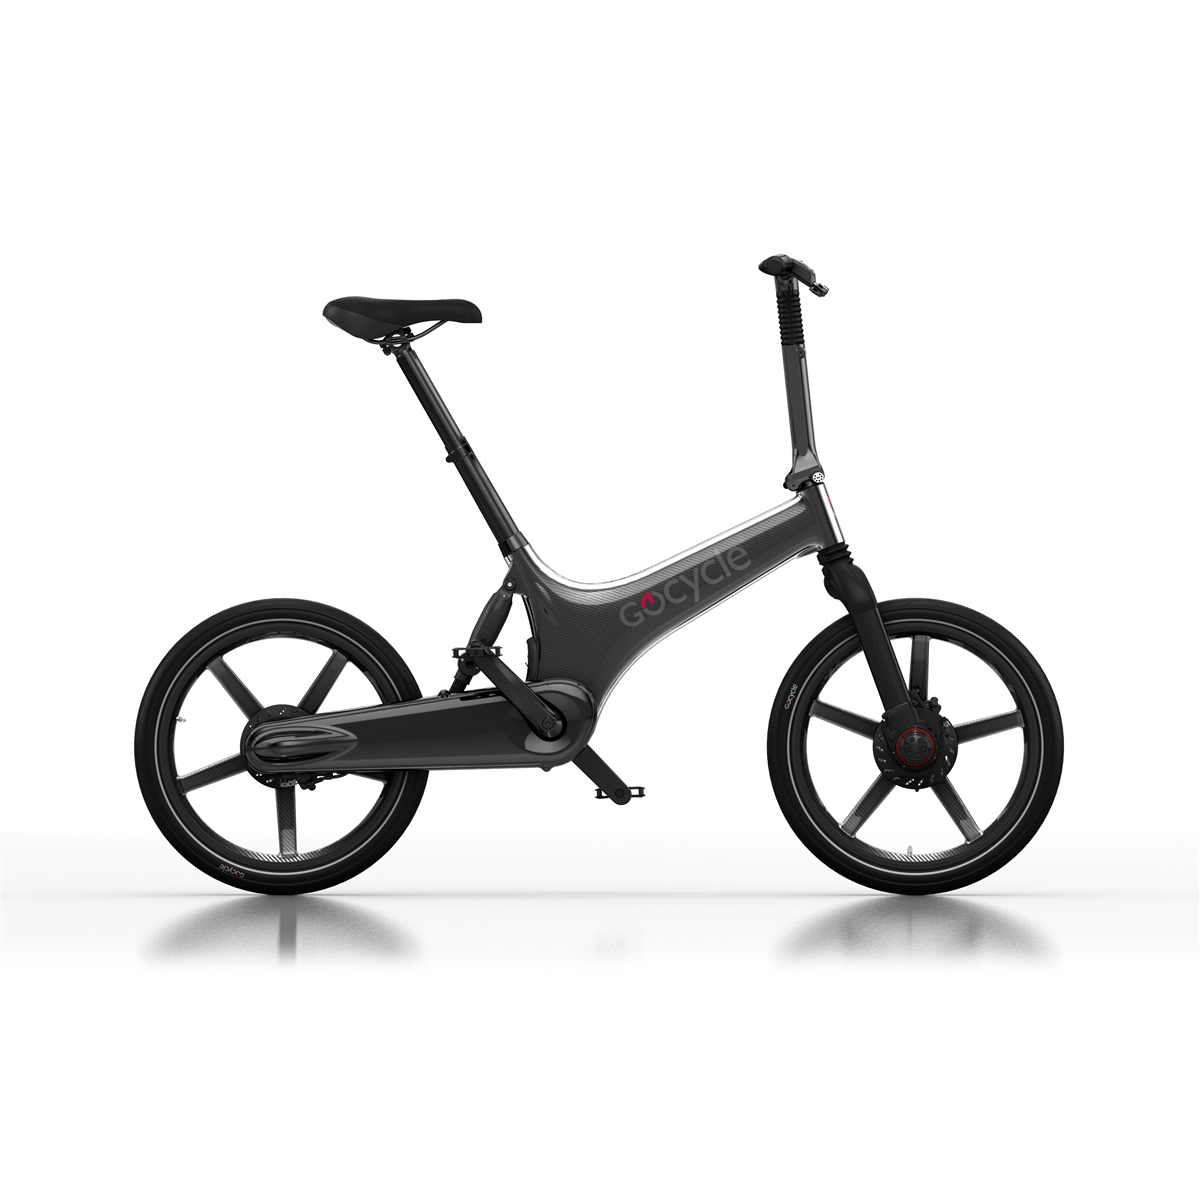 Gocycle G3C - Gocycle G3C Carbon